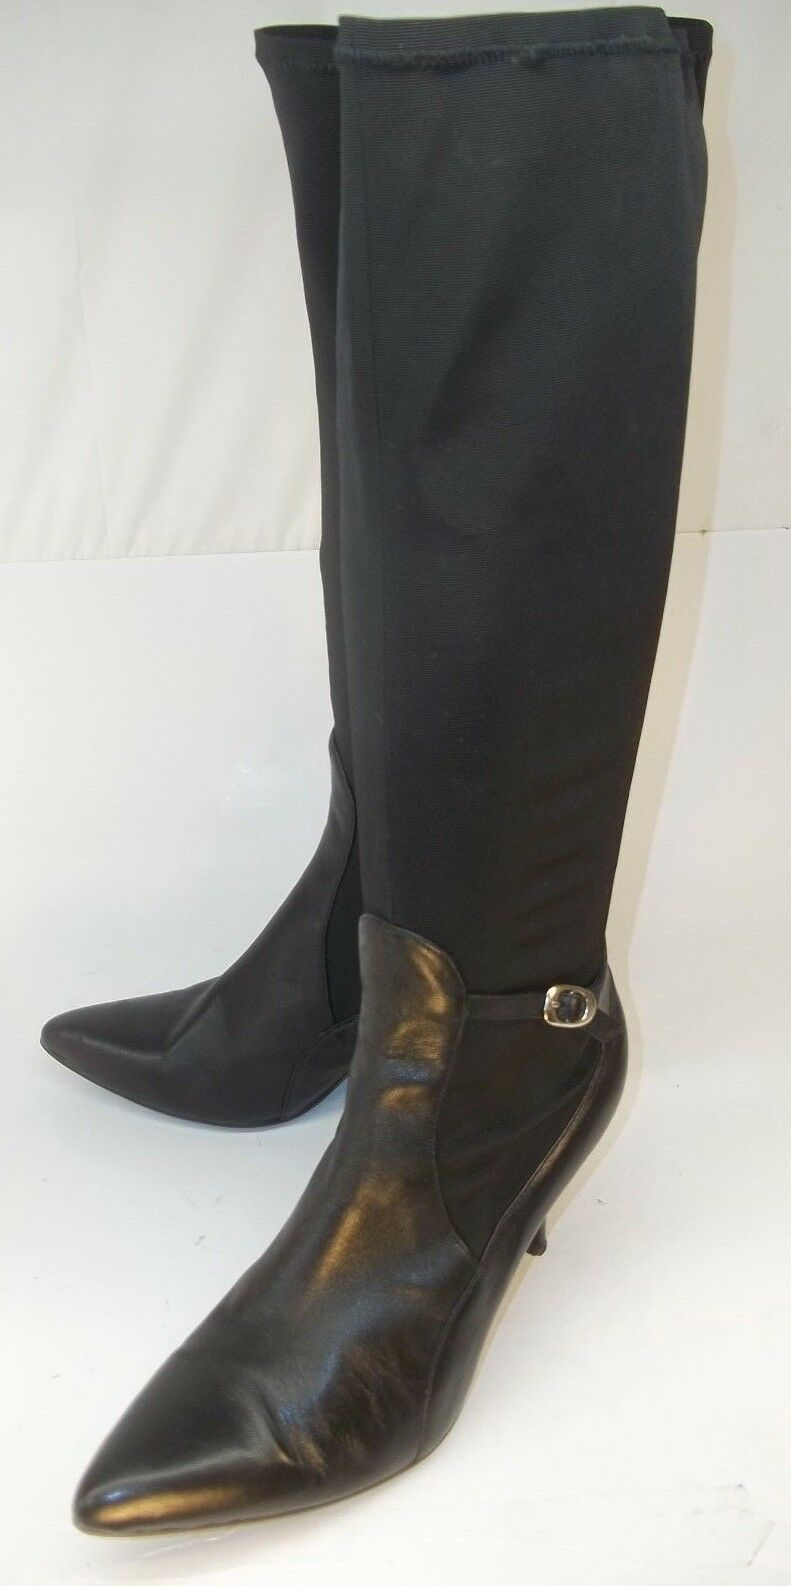 Nine West Womens Boots Knee High US7.5M Black Textile Leather Zip Buckle